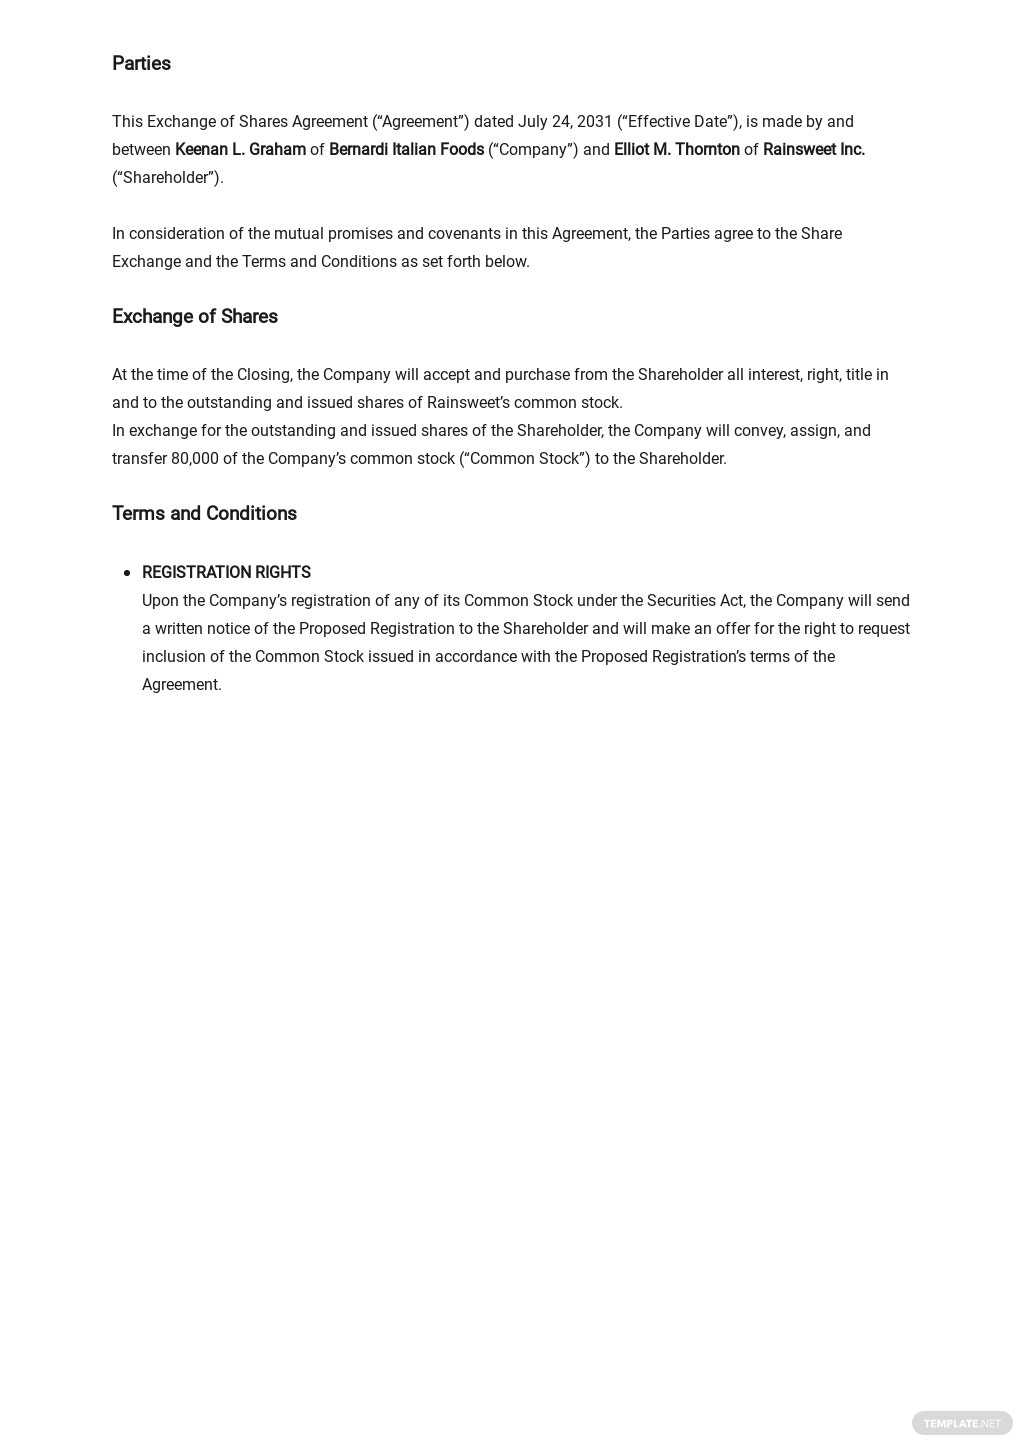 Exchange of Shares Agreement Template 1.jpe